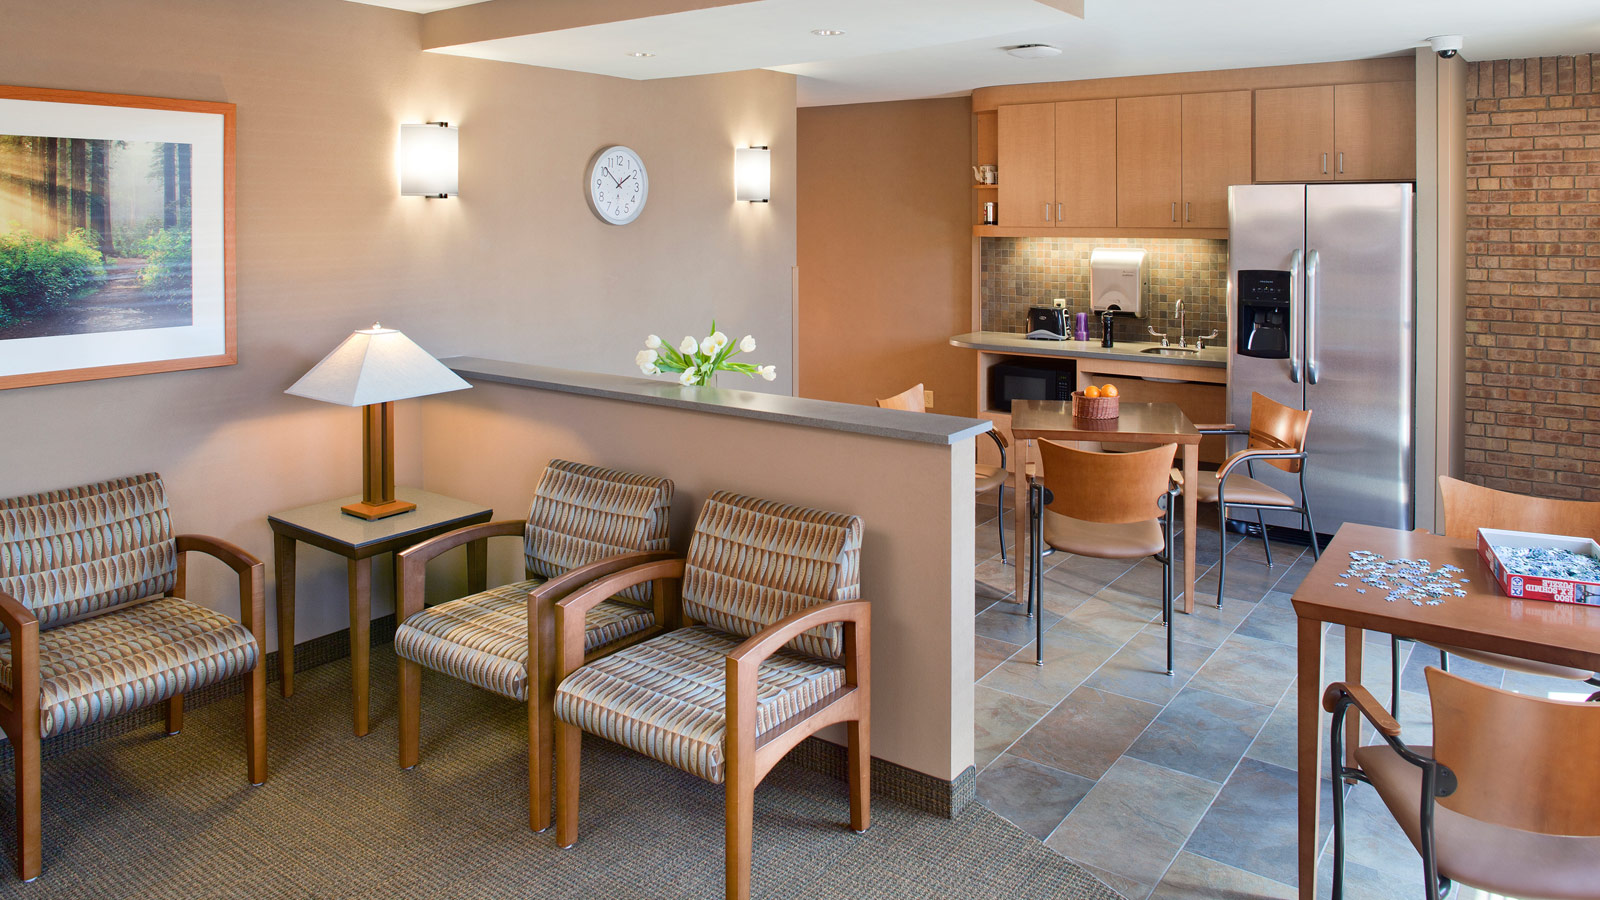 Hazelden Ignatia Renovation